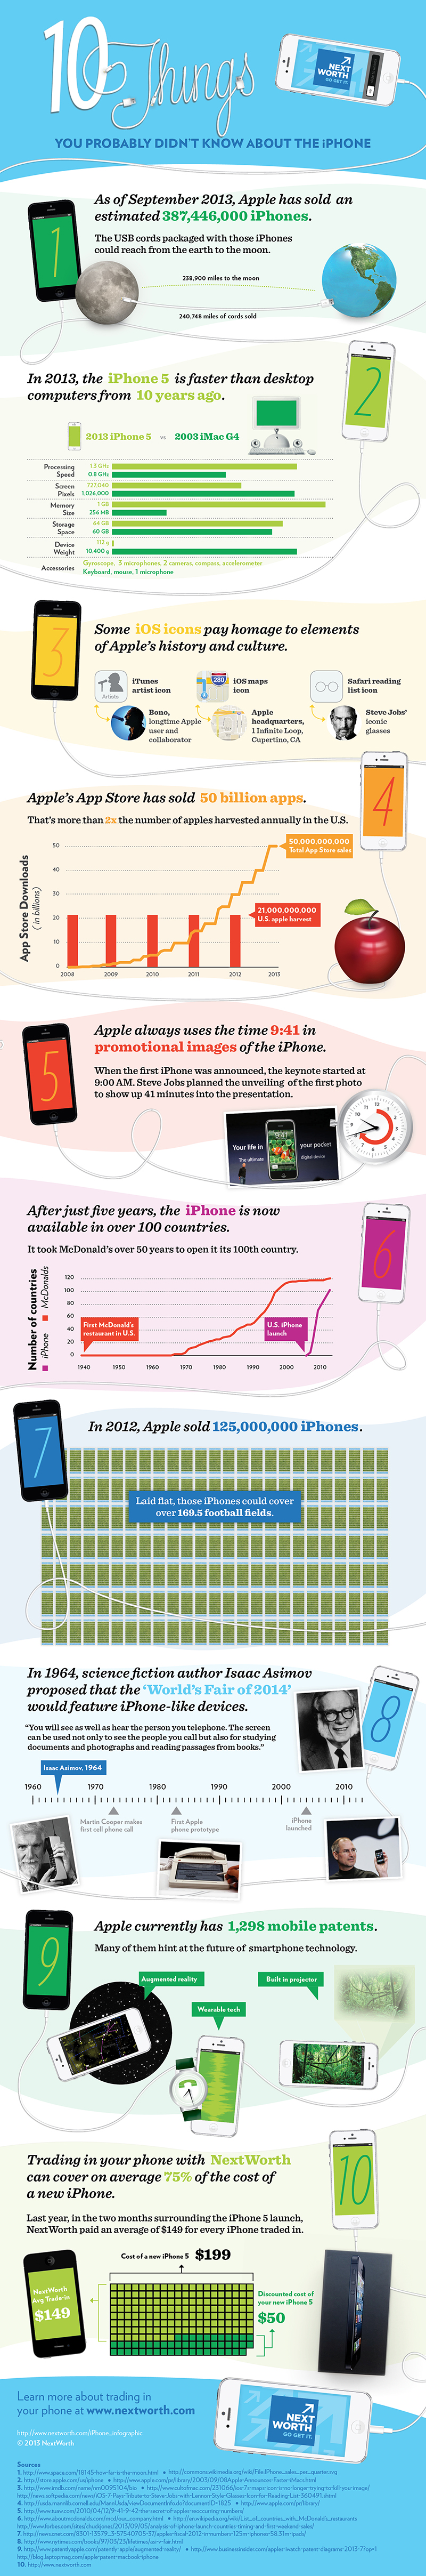 iPhone-Facts-Infographic-NextWorth